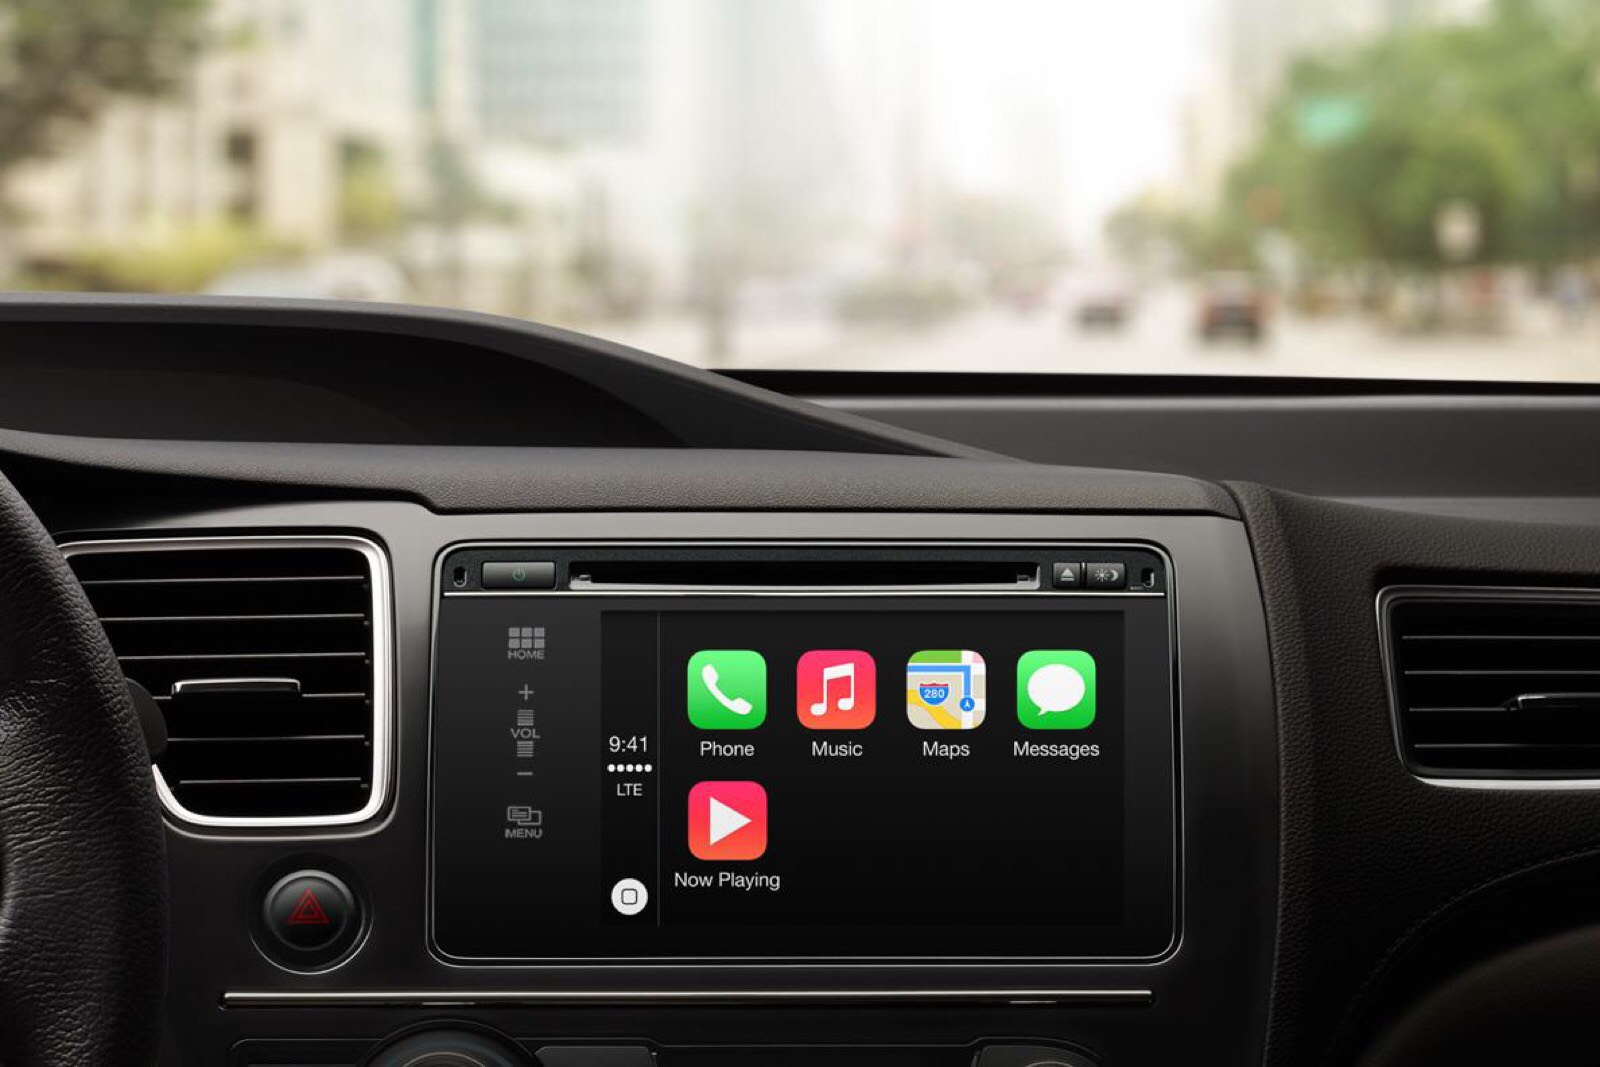 Apple's marketing image showing a car interior with the CarPlay dashboard